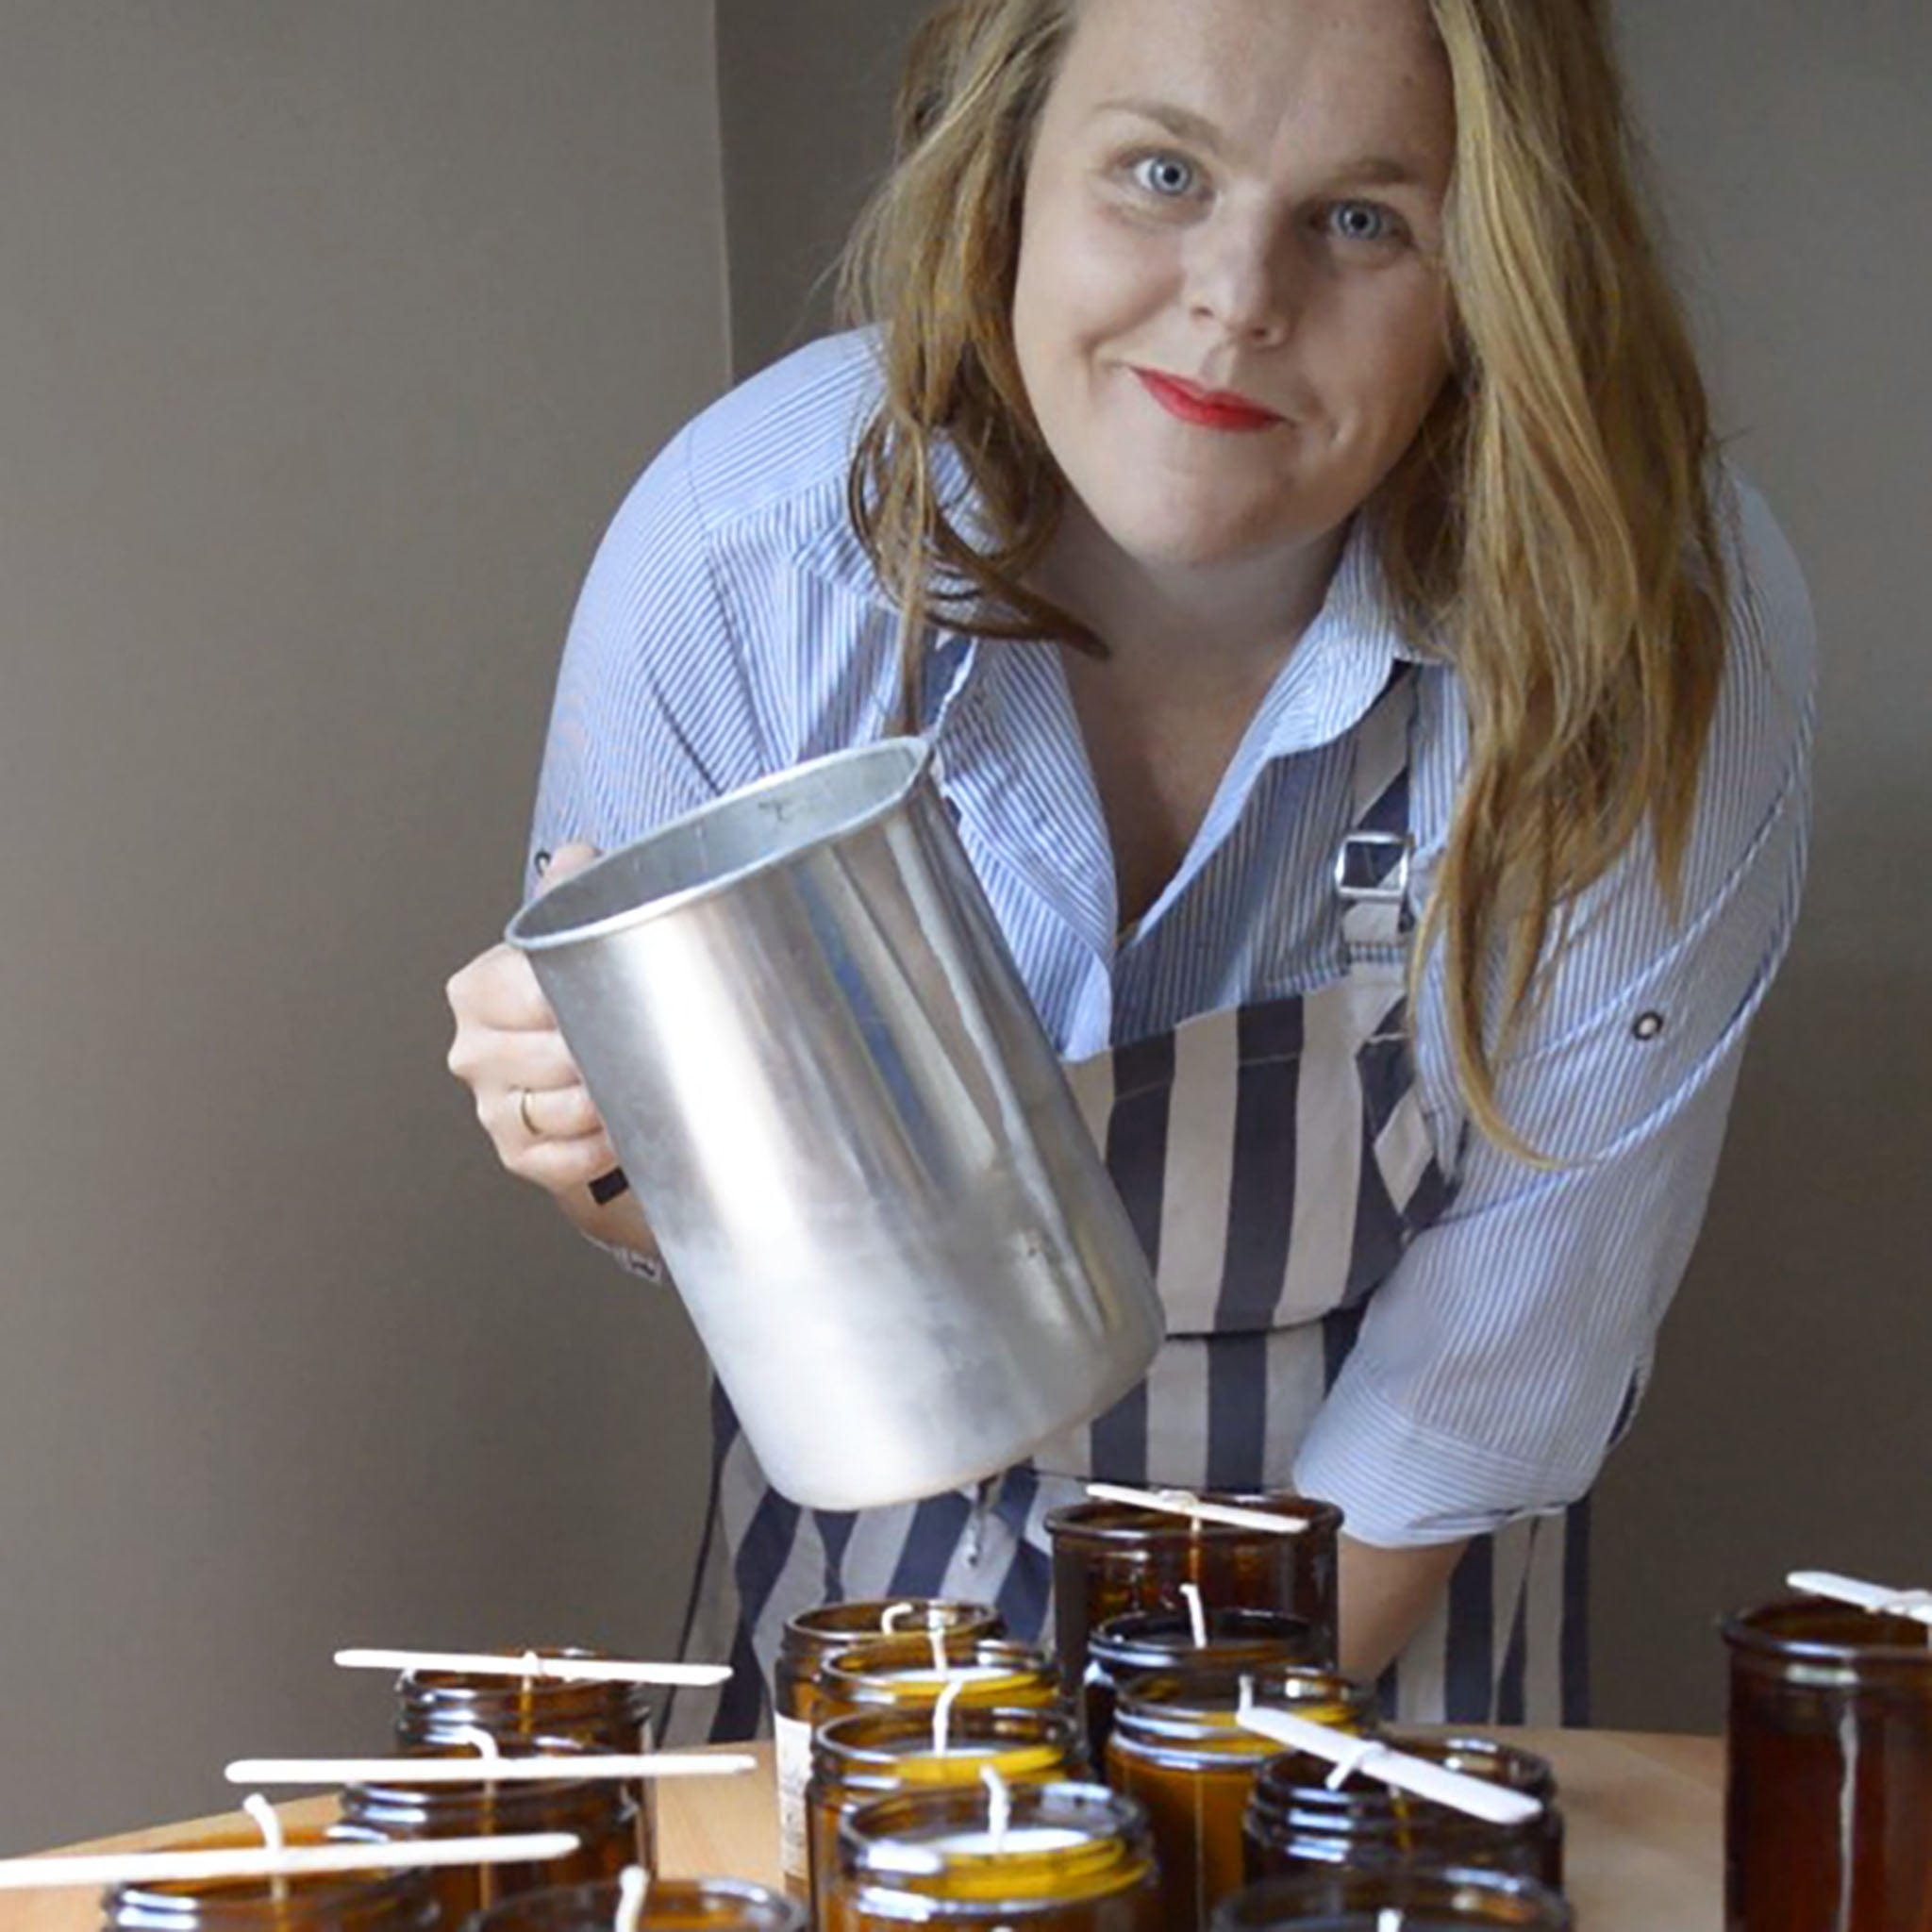 Lucinda from Scents of Saudade pouring handmade soy candles